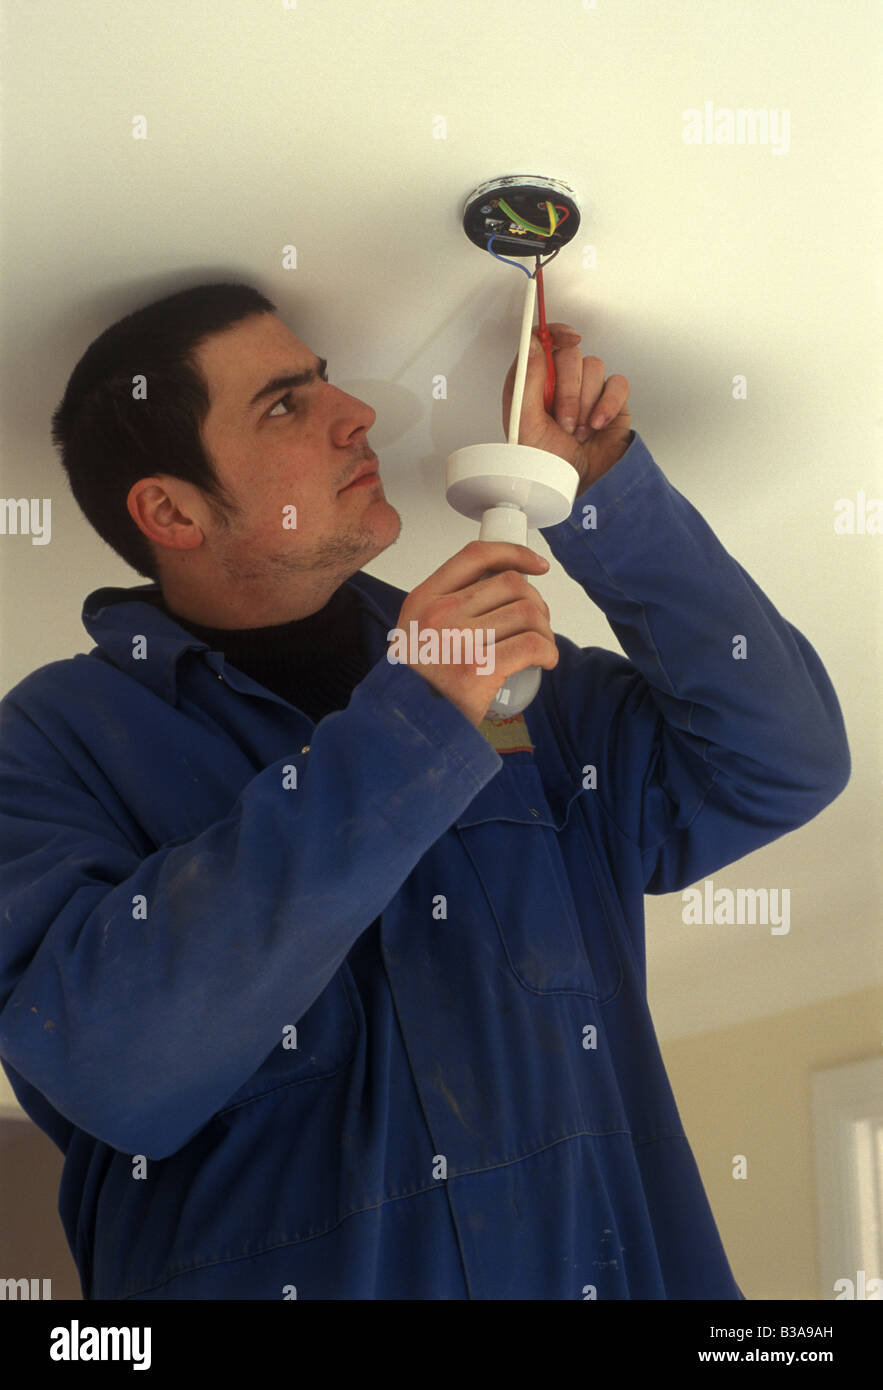 Electrician Wiring Ceiling Rose Stock Photos A In New House Image